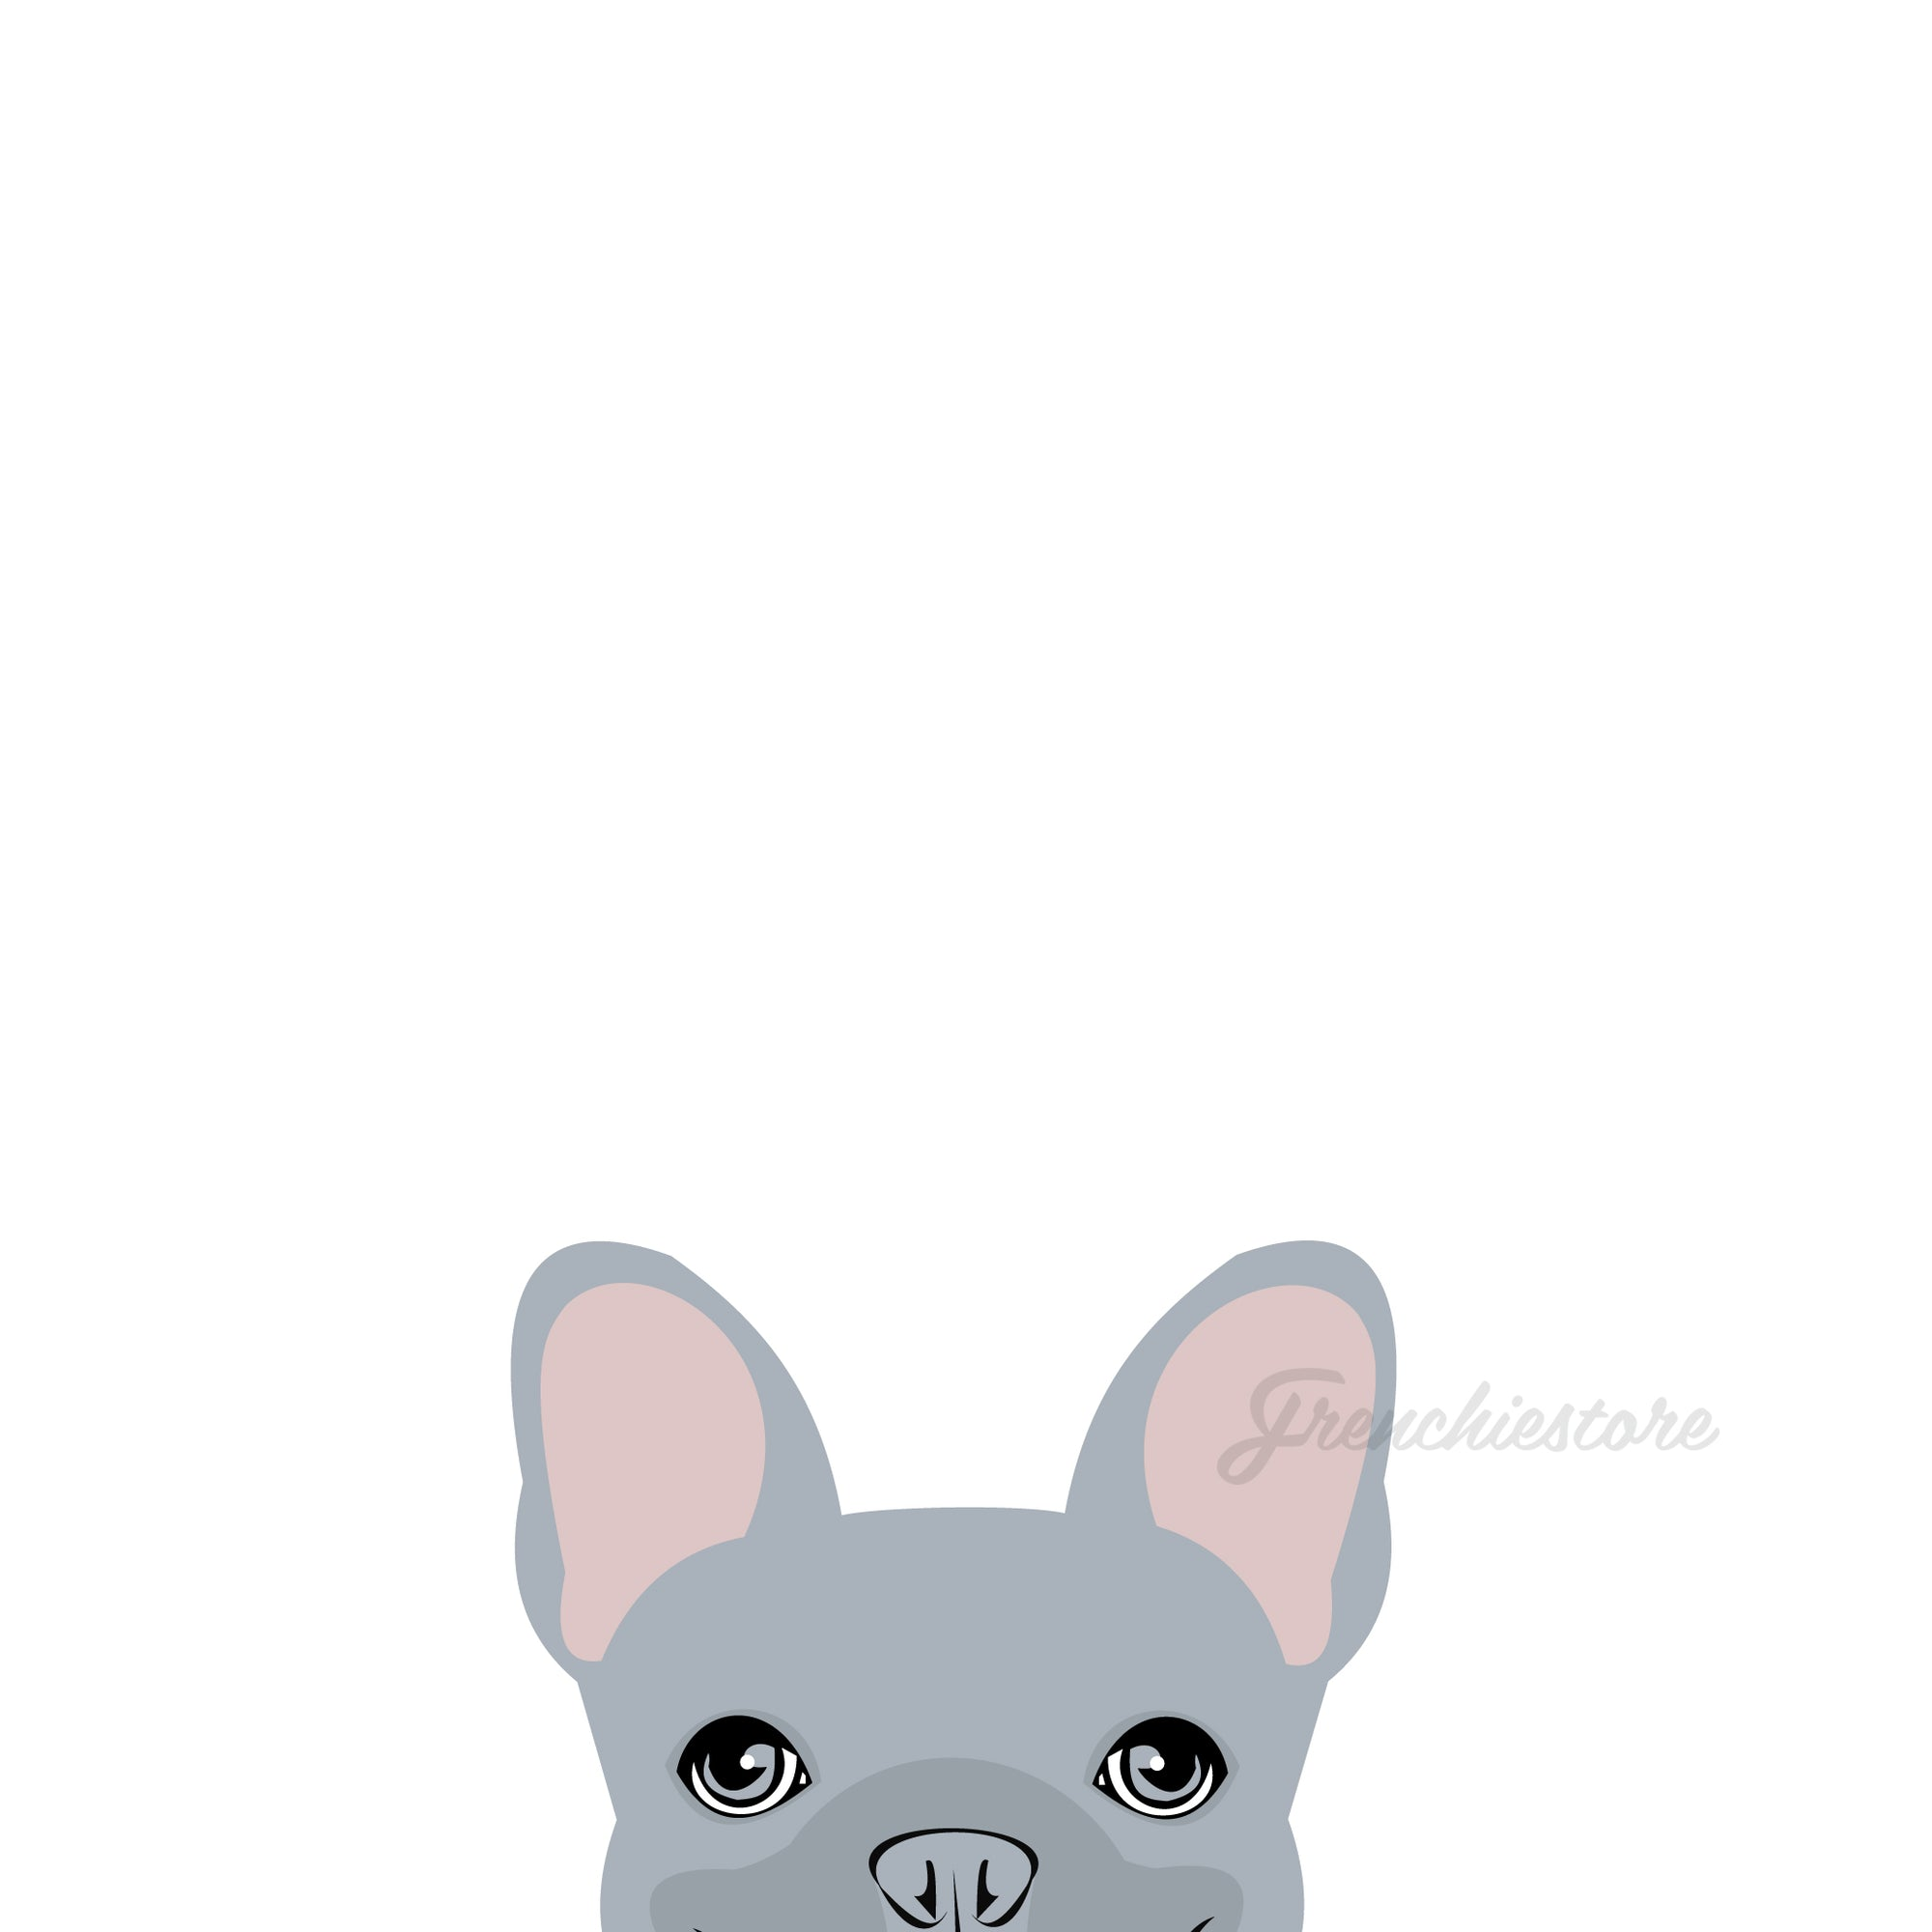 Frenchie Sticker | Frenchiestore |  Lilac French Bulldog Car Decal, Frenchie Dog, French Bulldog pet products